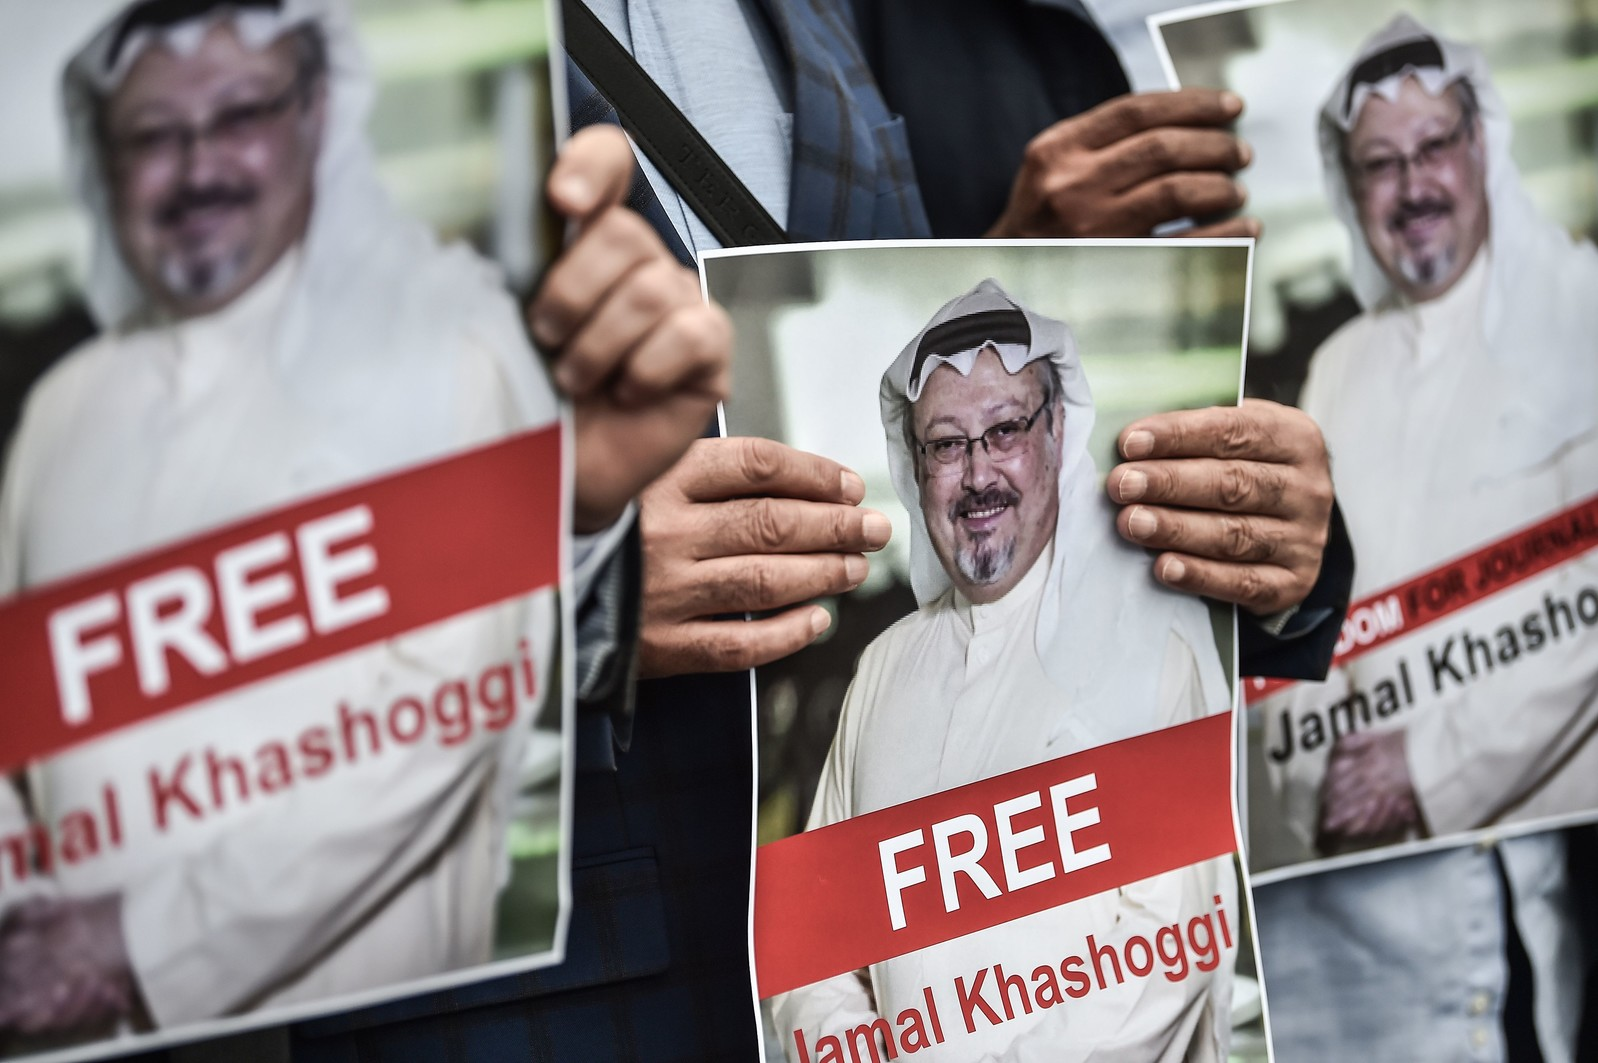 Saudi Arabia: UN findings on Jamal Khashoggi's murder highlight need for independent criminal investigation to uncover the truth